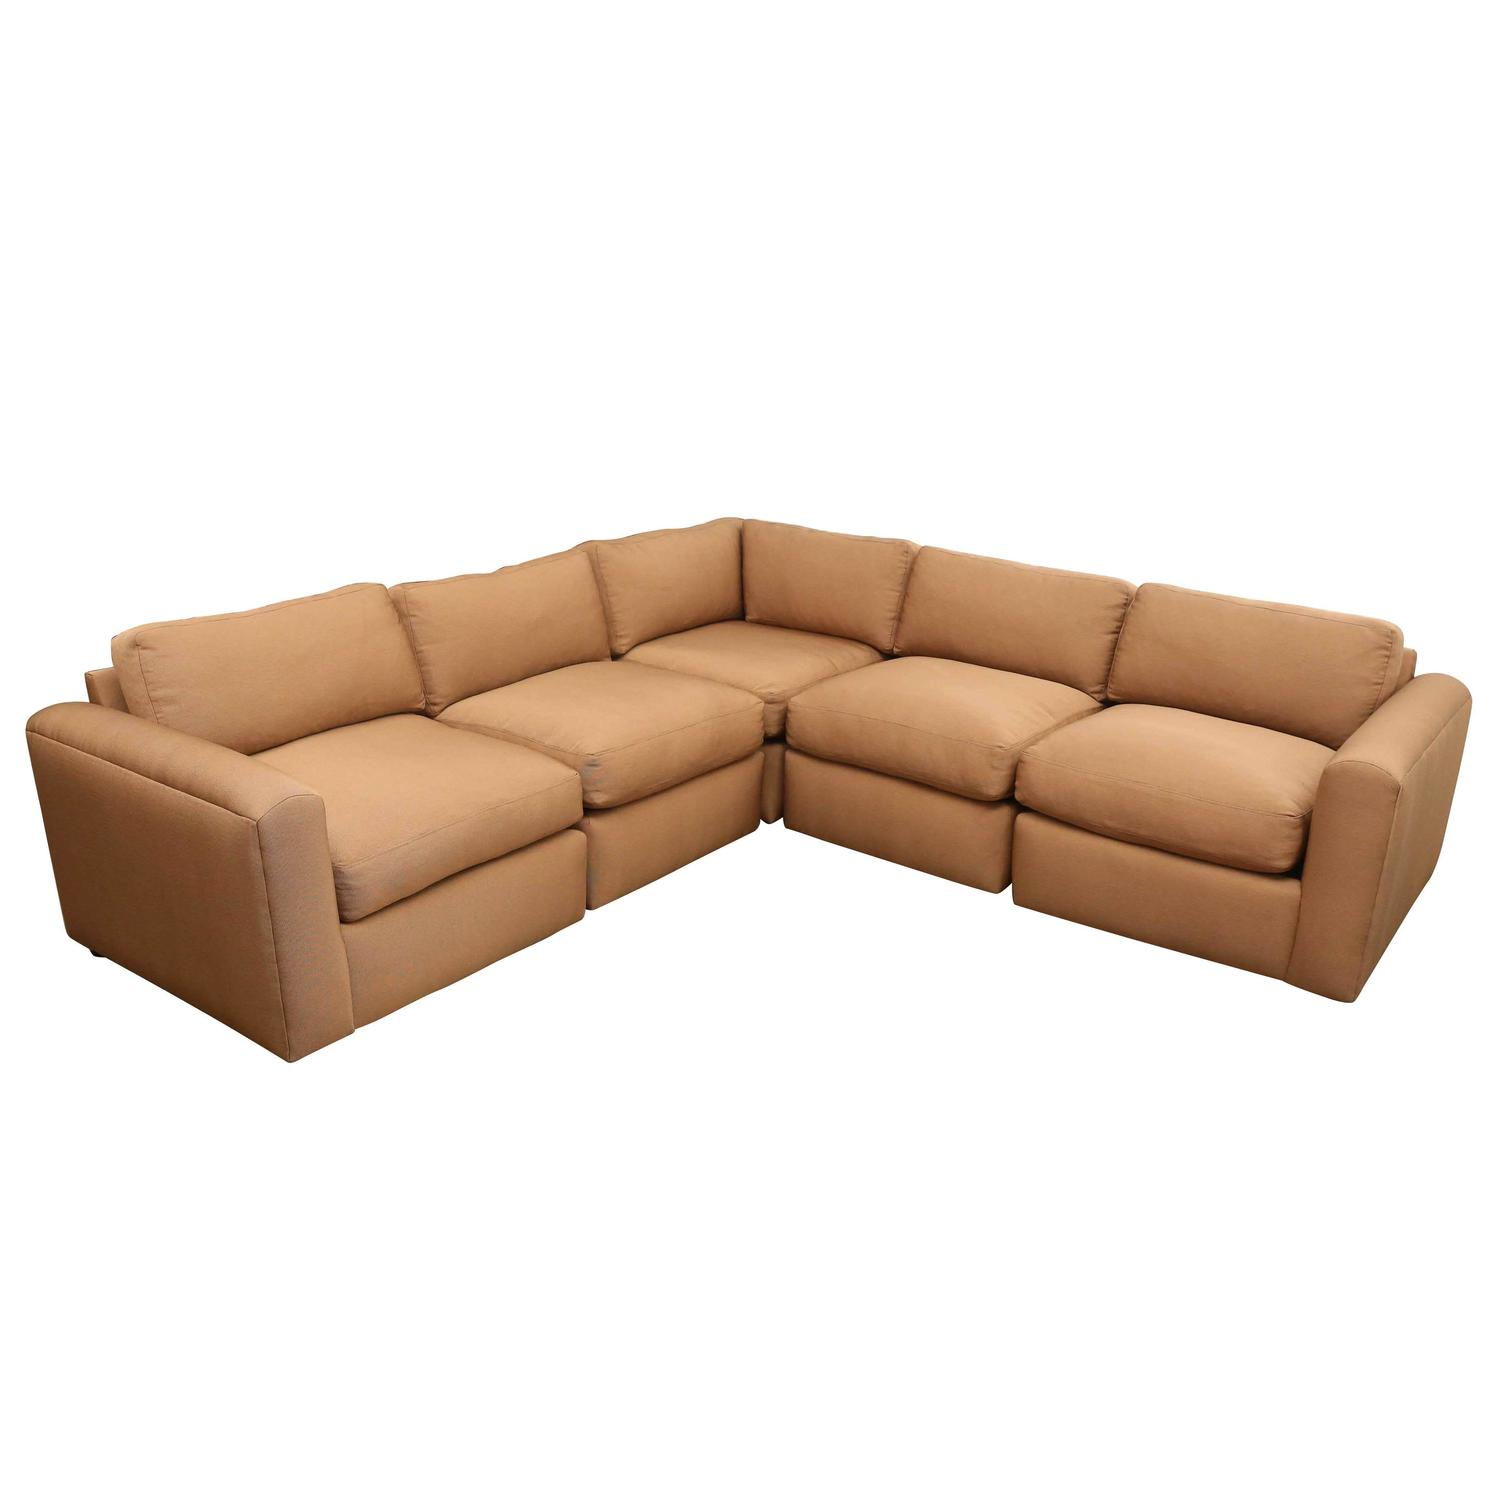 Knoll Furniture Chairs Sofas Tables & More 653 For Sale at